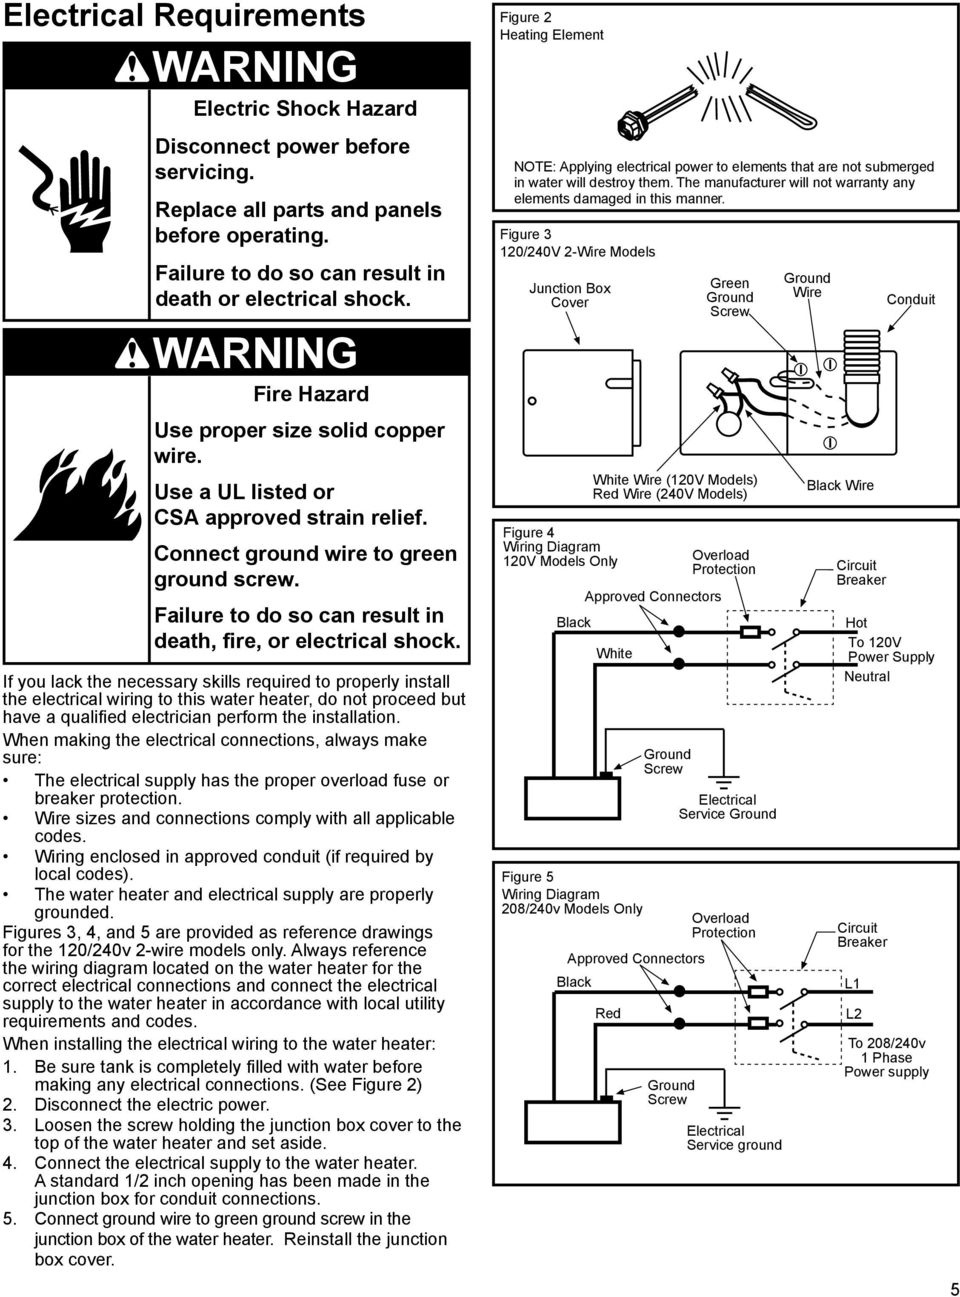 Residential Electric Water Heater Pdf Free Download